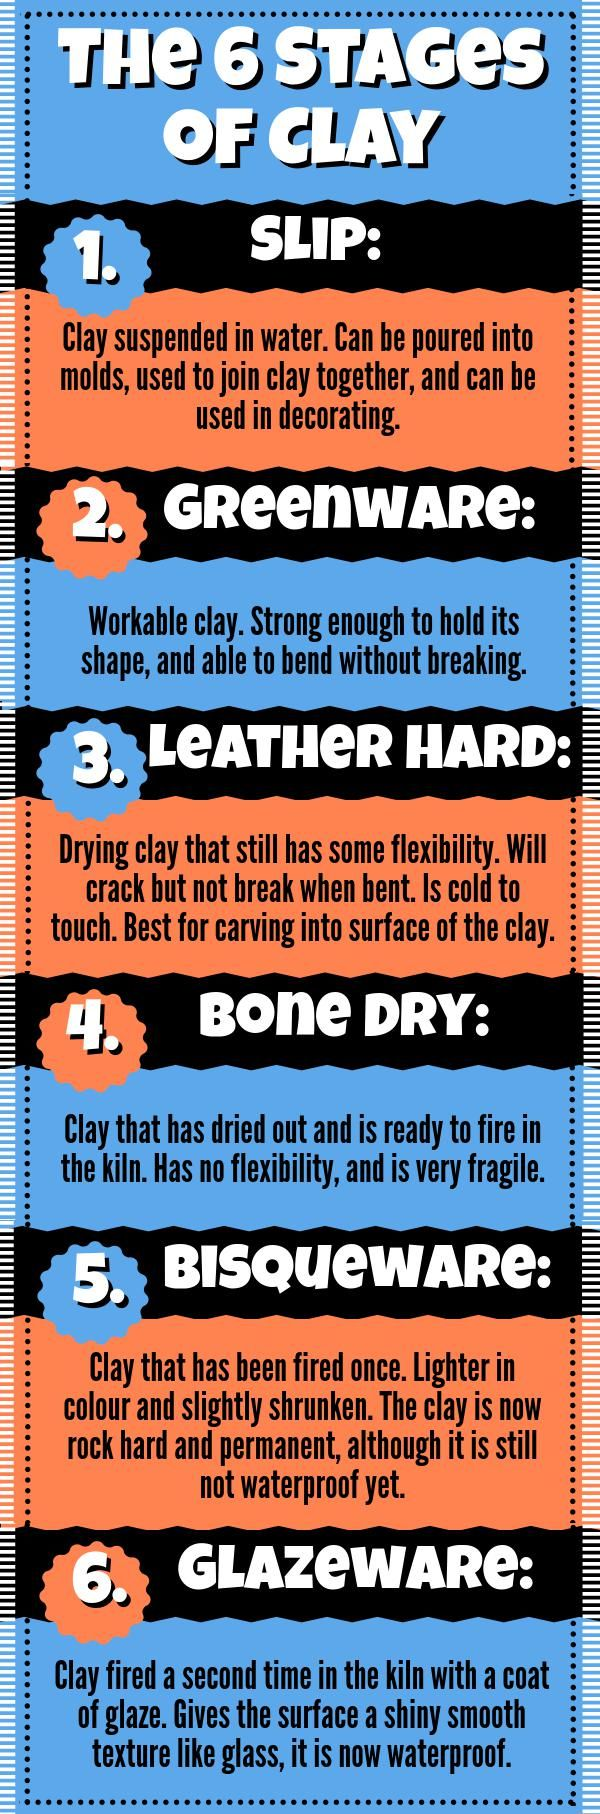 The 6 Stages of Clay | Piktochart Infographic Editor